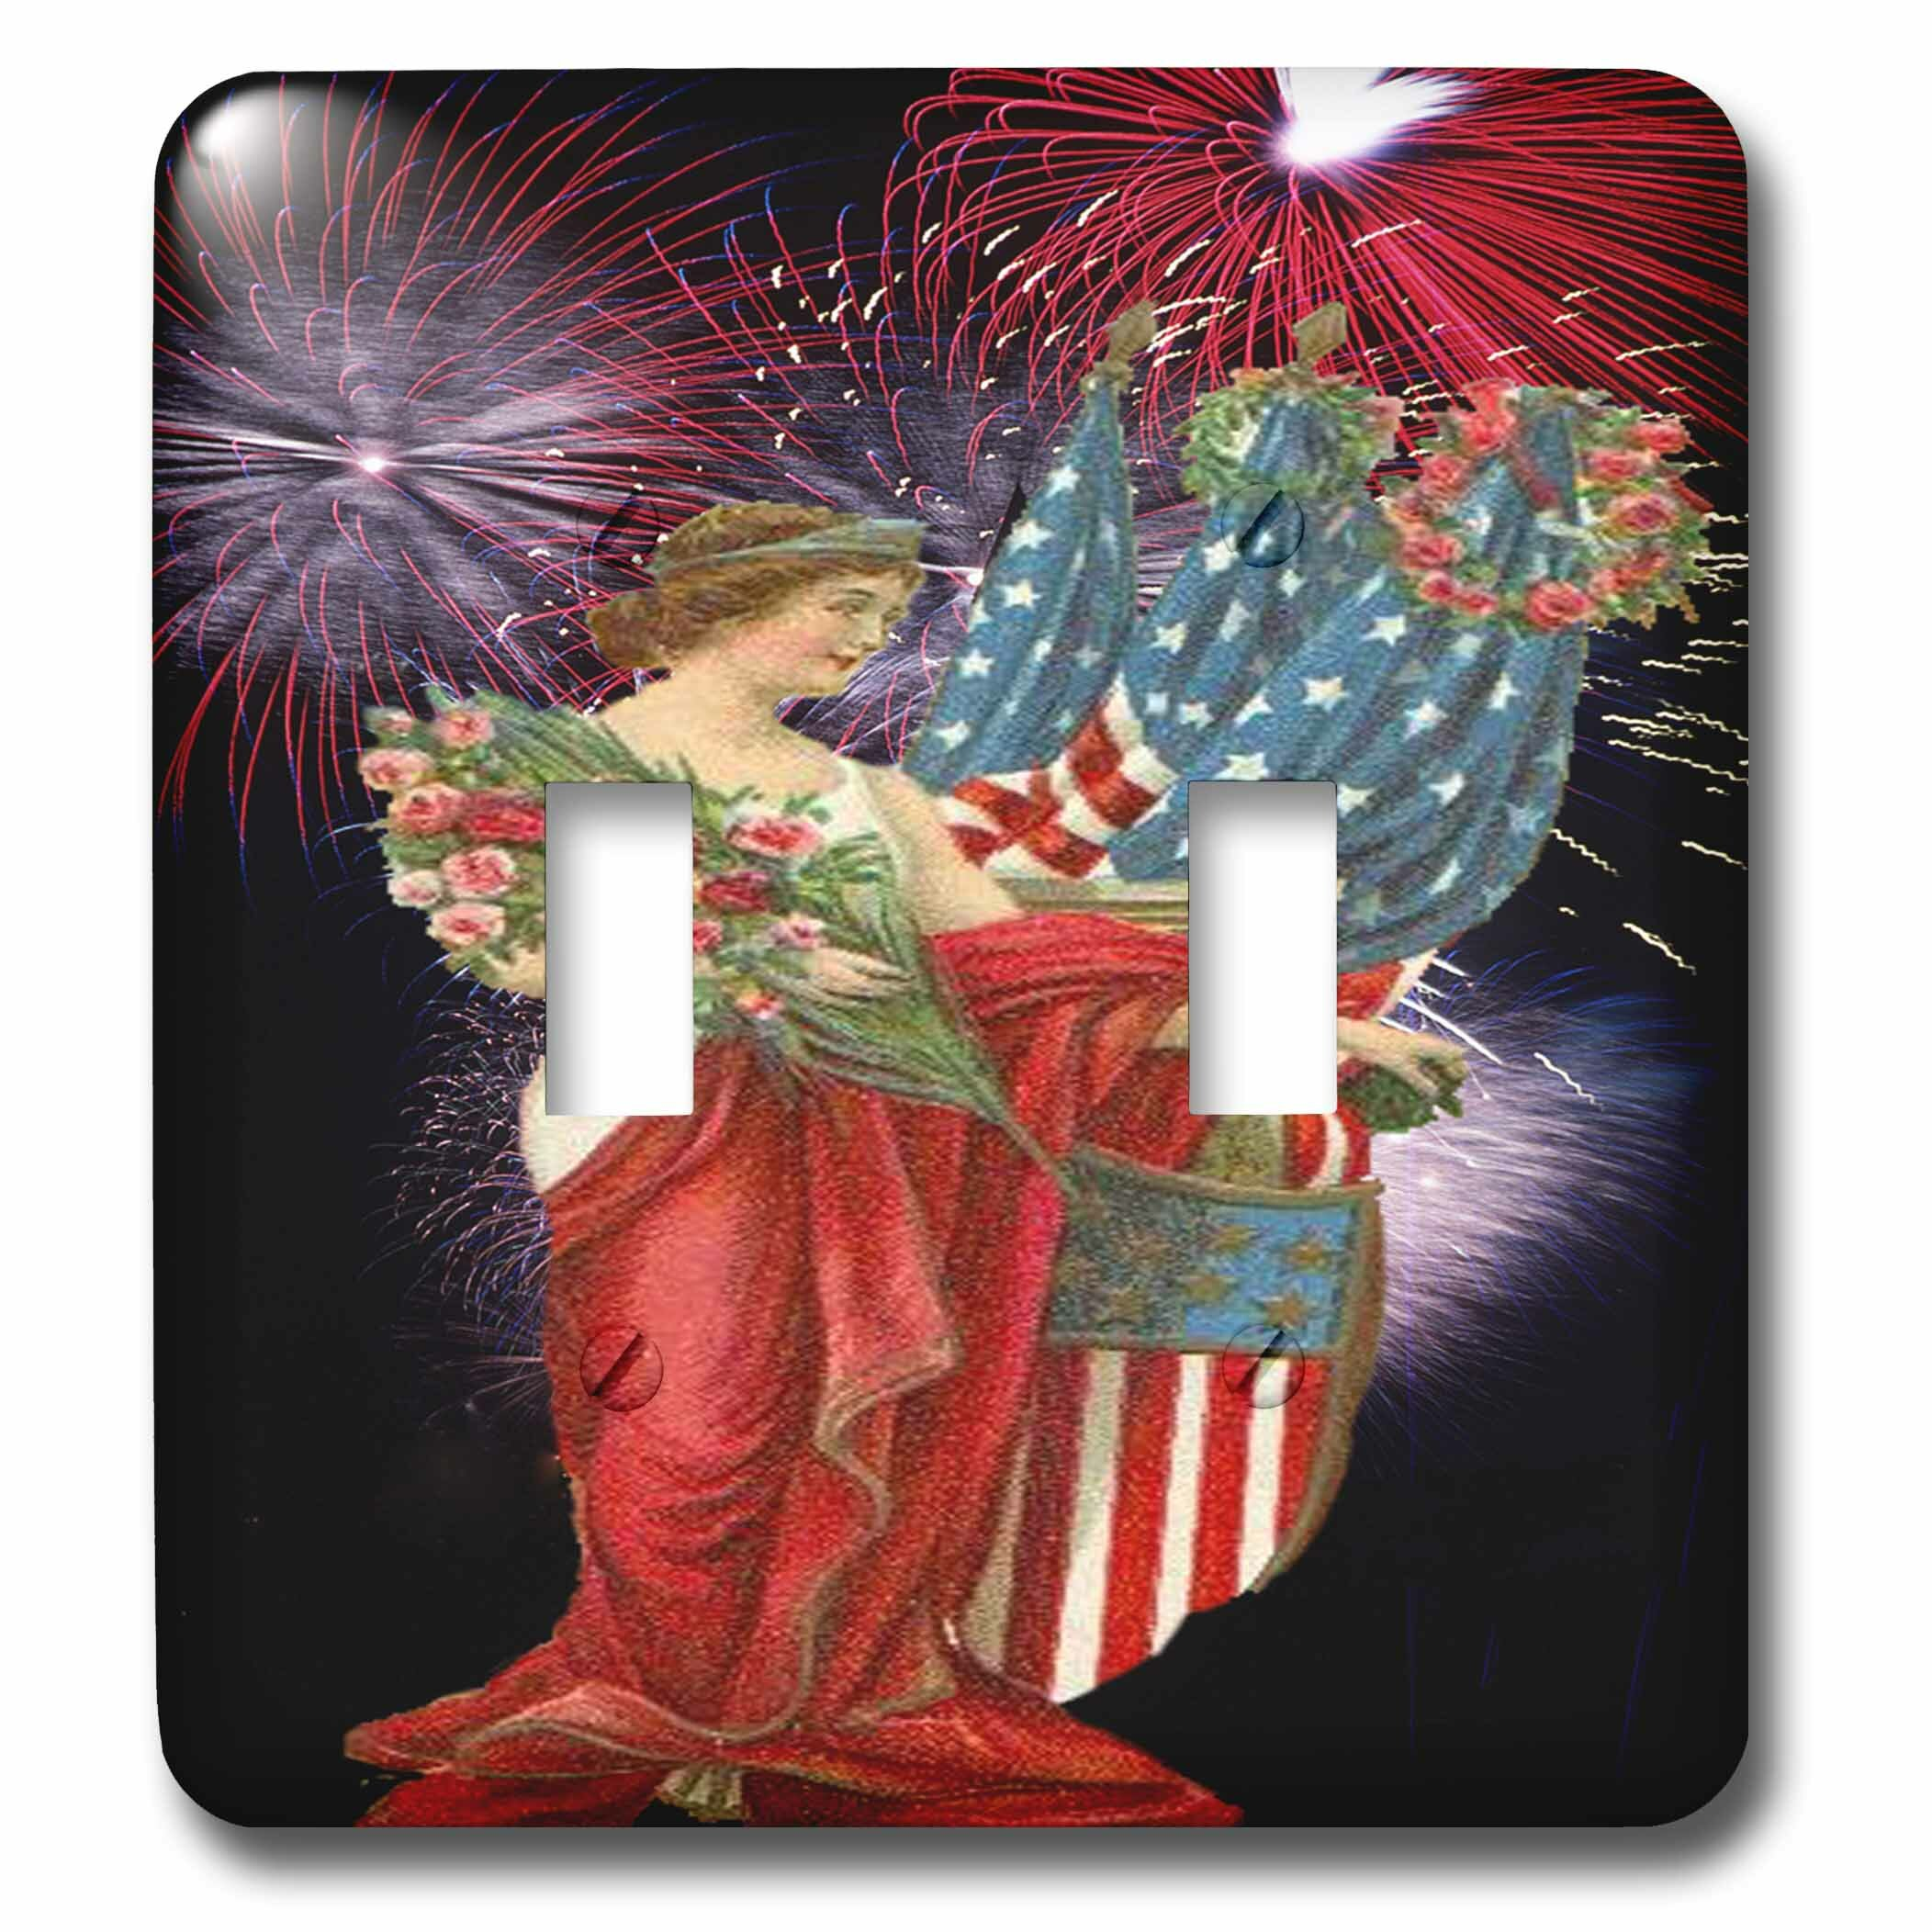 3drose Lady And Fireworks 2 Gang Toggle Light Switch Wall Plate Wayfair